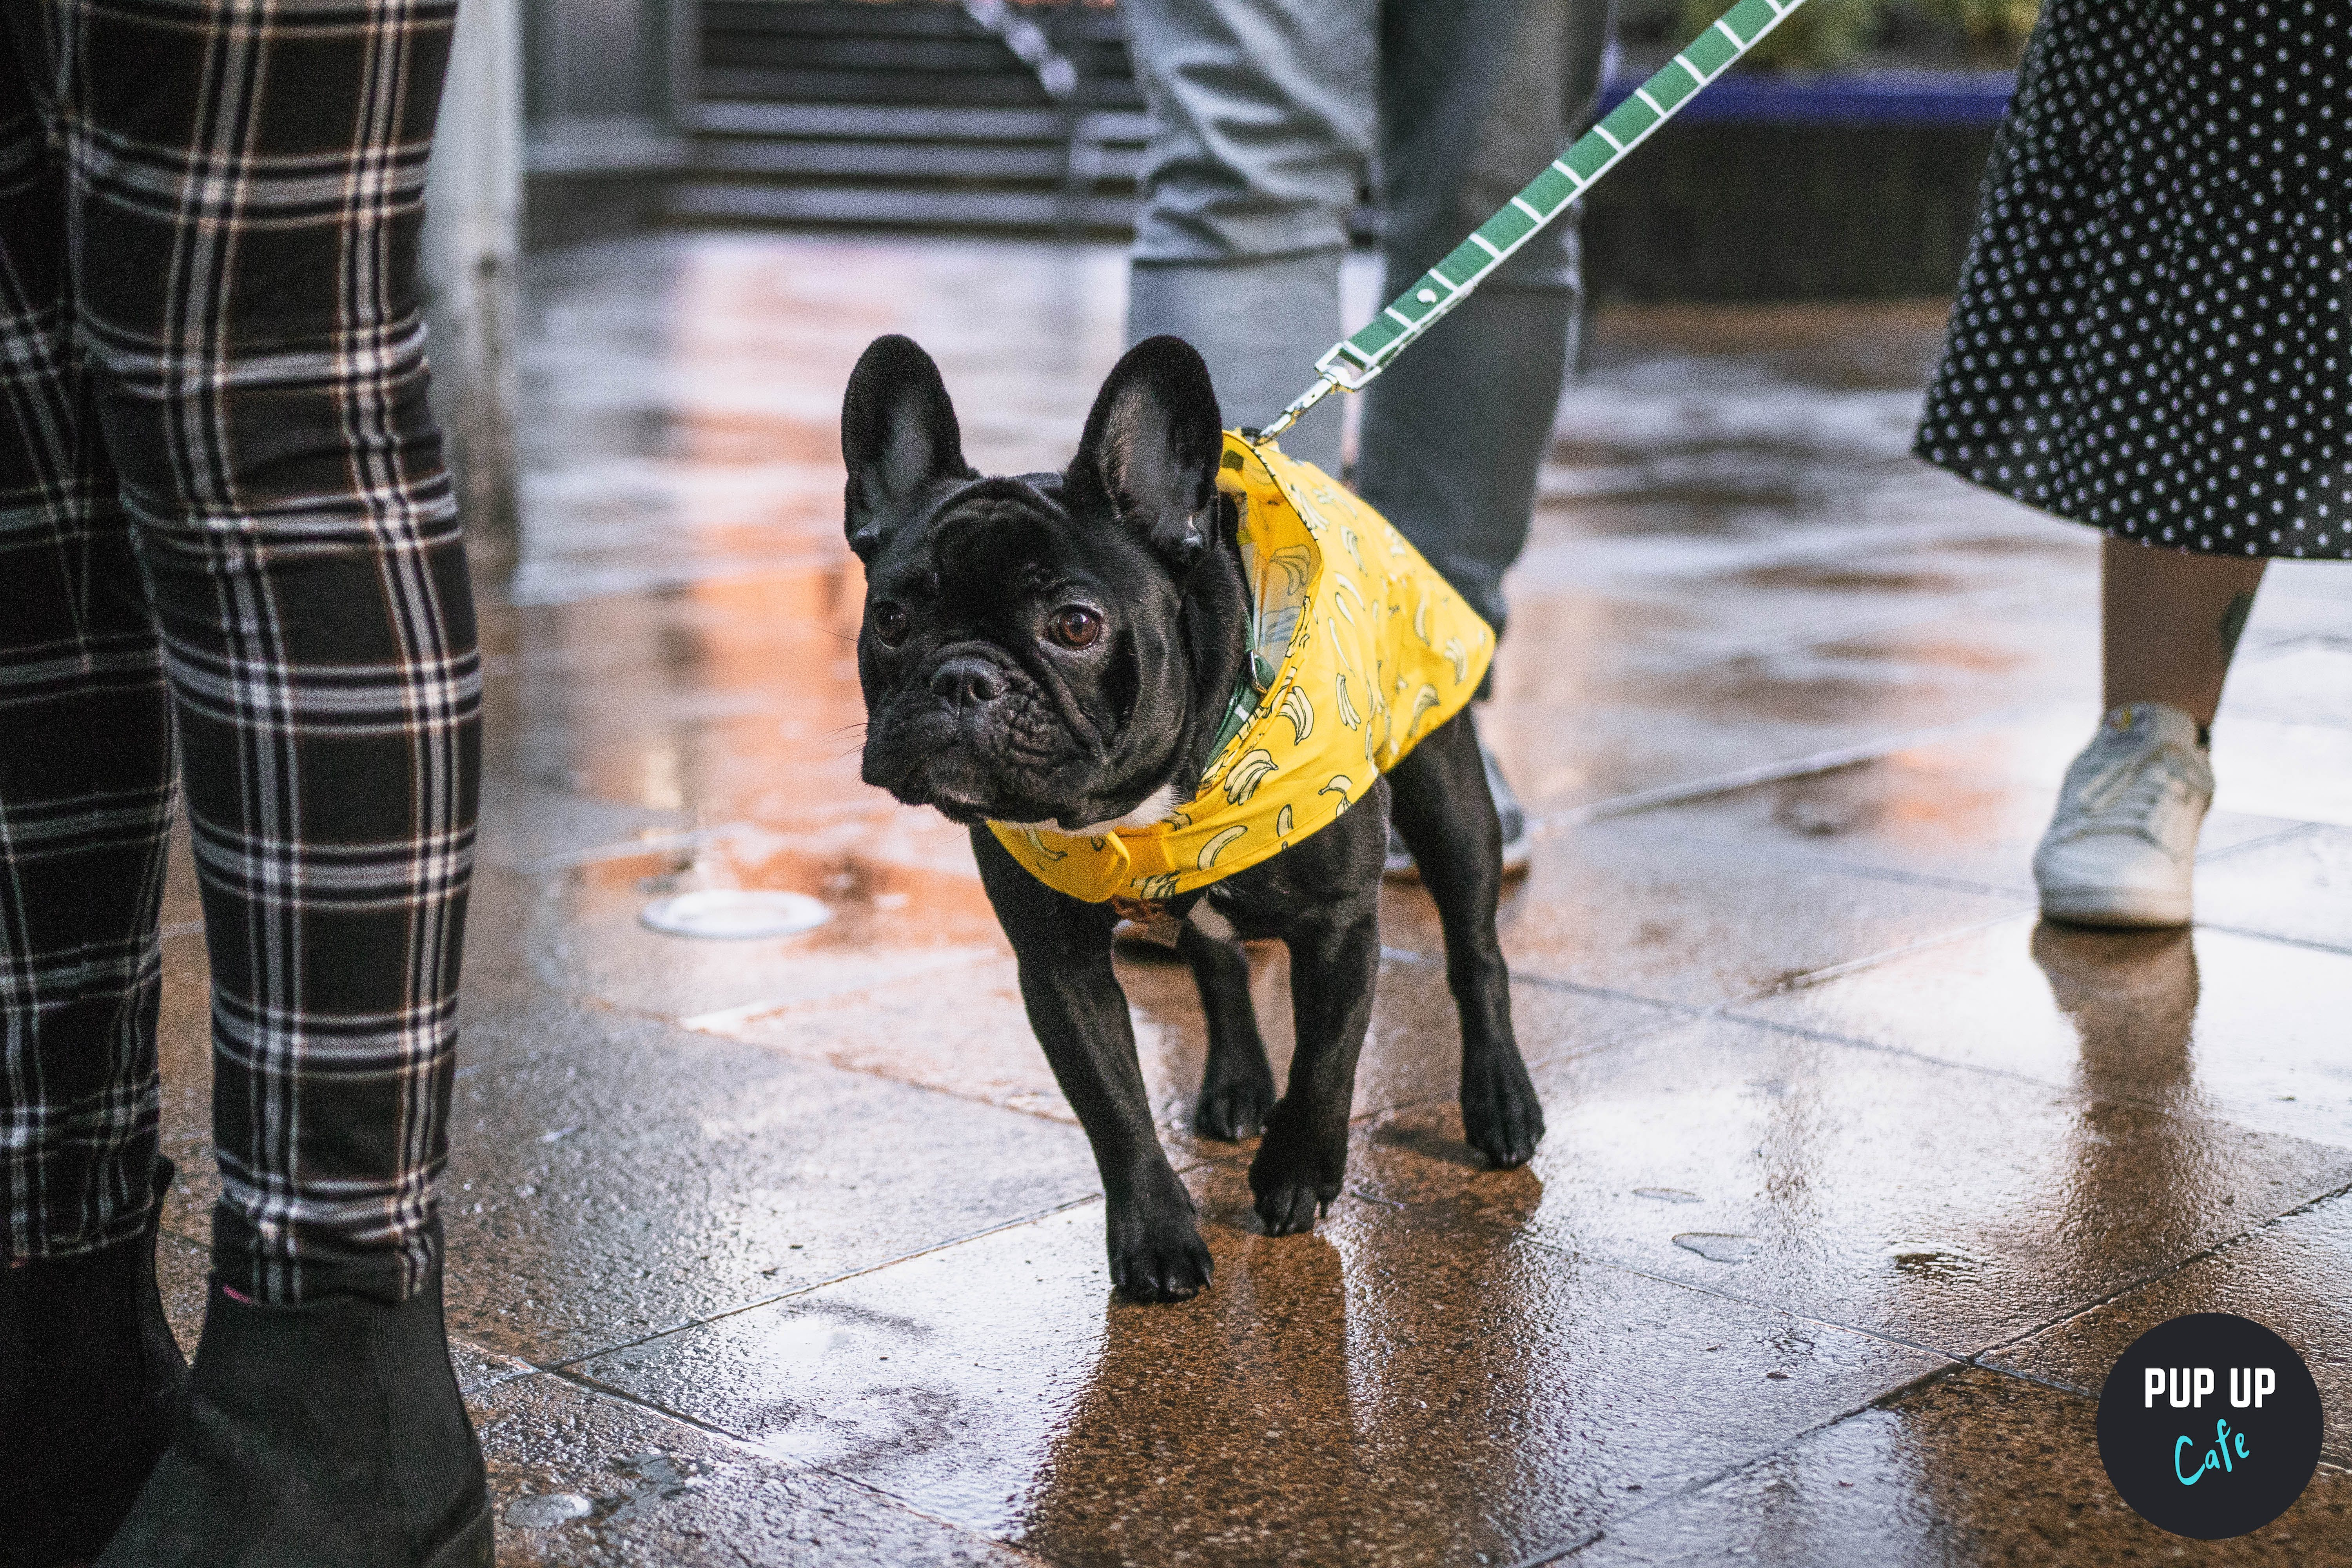 The Front Room to host Pup Up Cafe dedicated to Pugs and Frenchies!